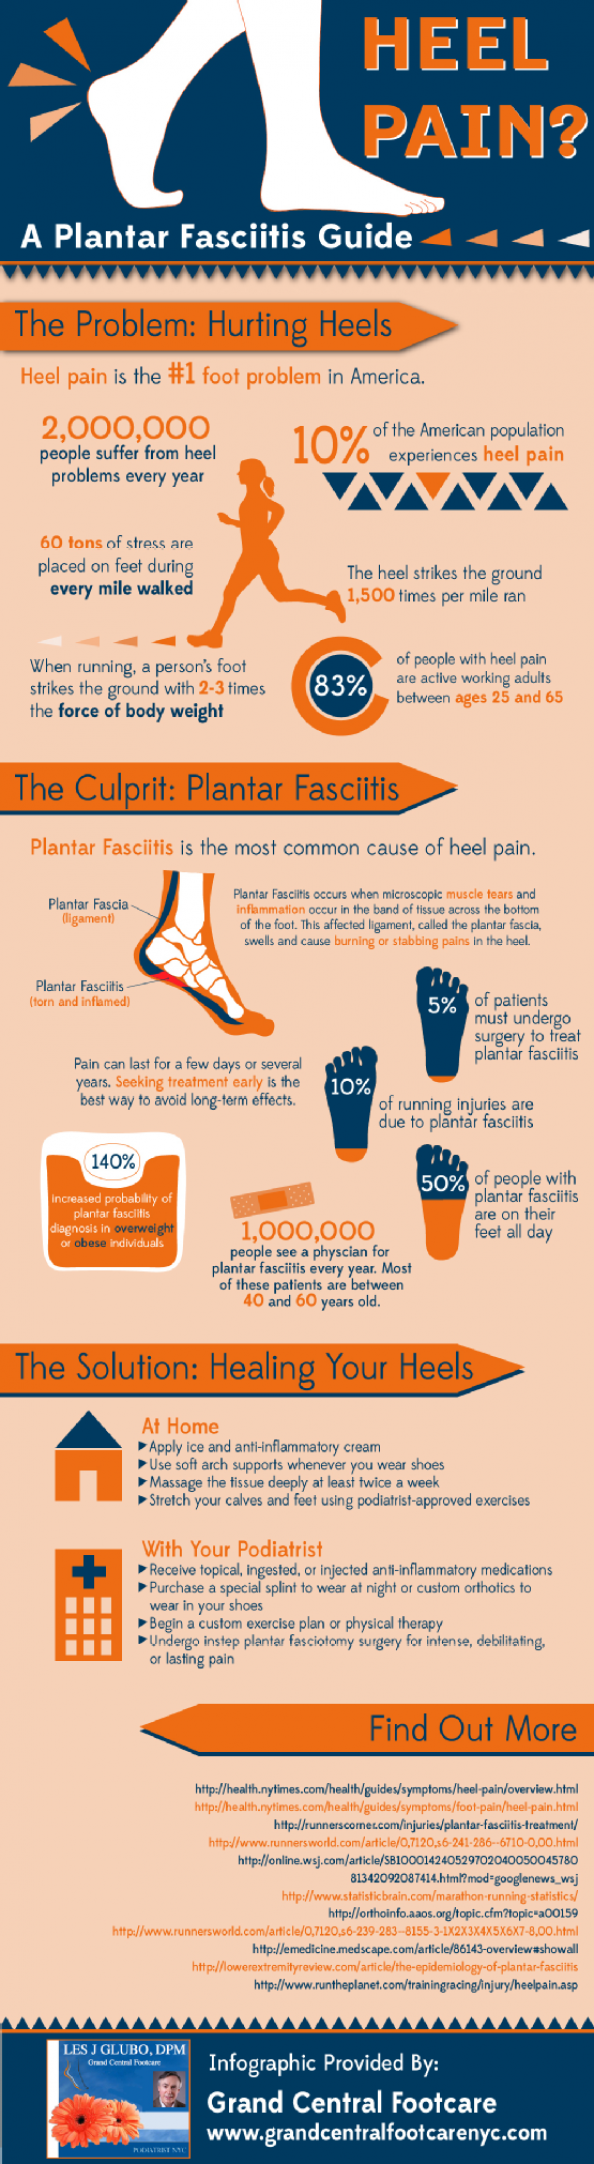 Heel Pain? A Plantar Fasciitis Guide Infographic